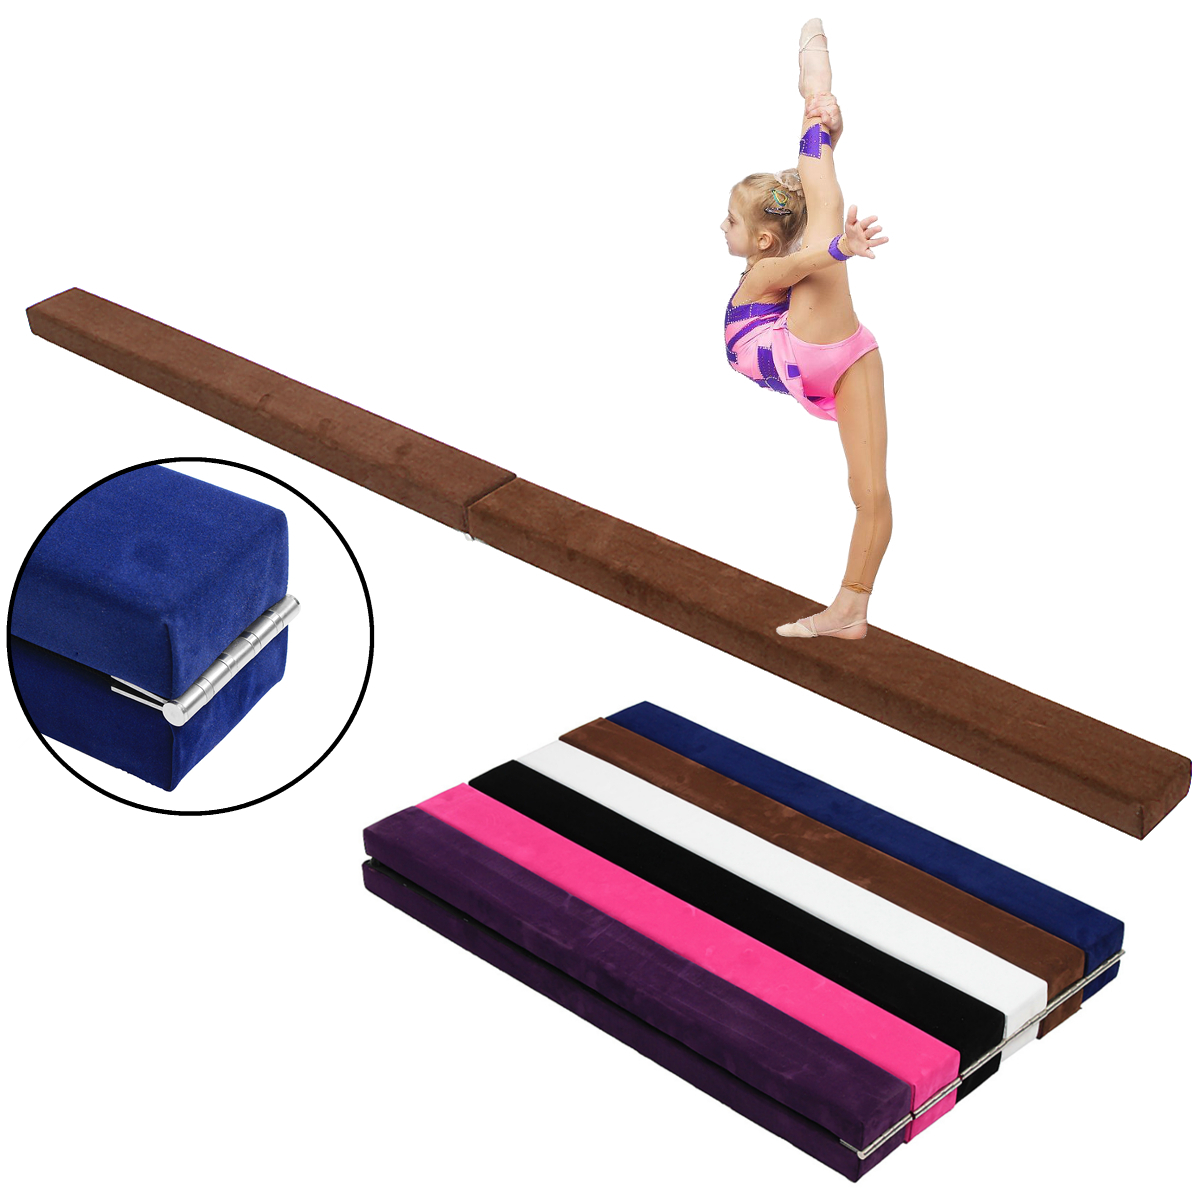 48x3.9x2.2inch Kids Folding Balance Beam Gymnastics Mat Training Pad Sports Protective Gear